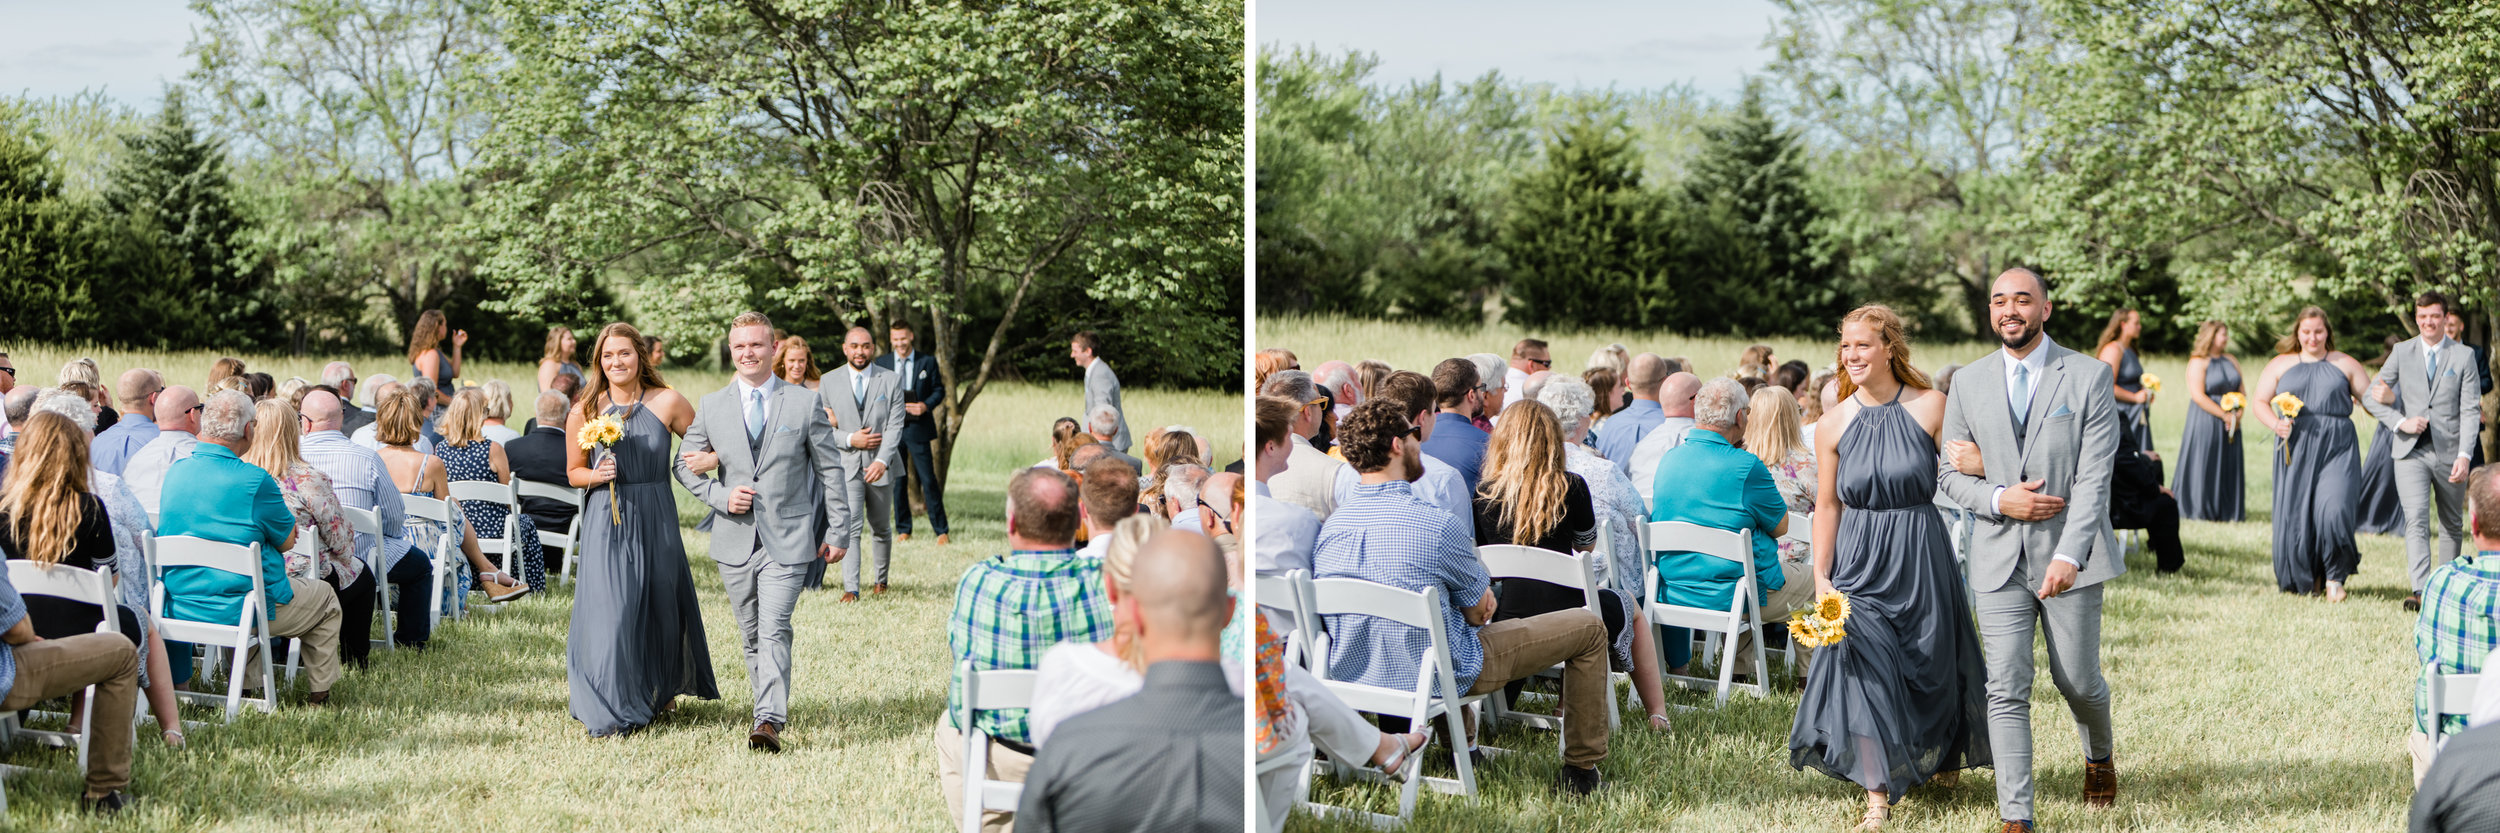 Kansas city wedding photographer 30.jpg